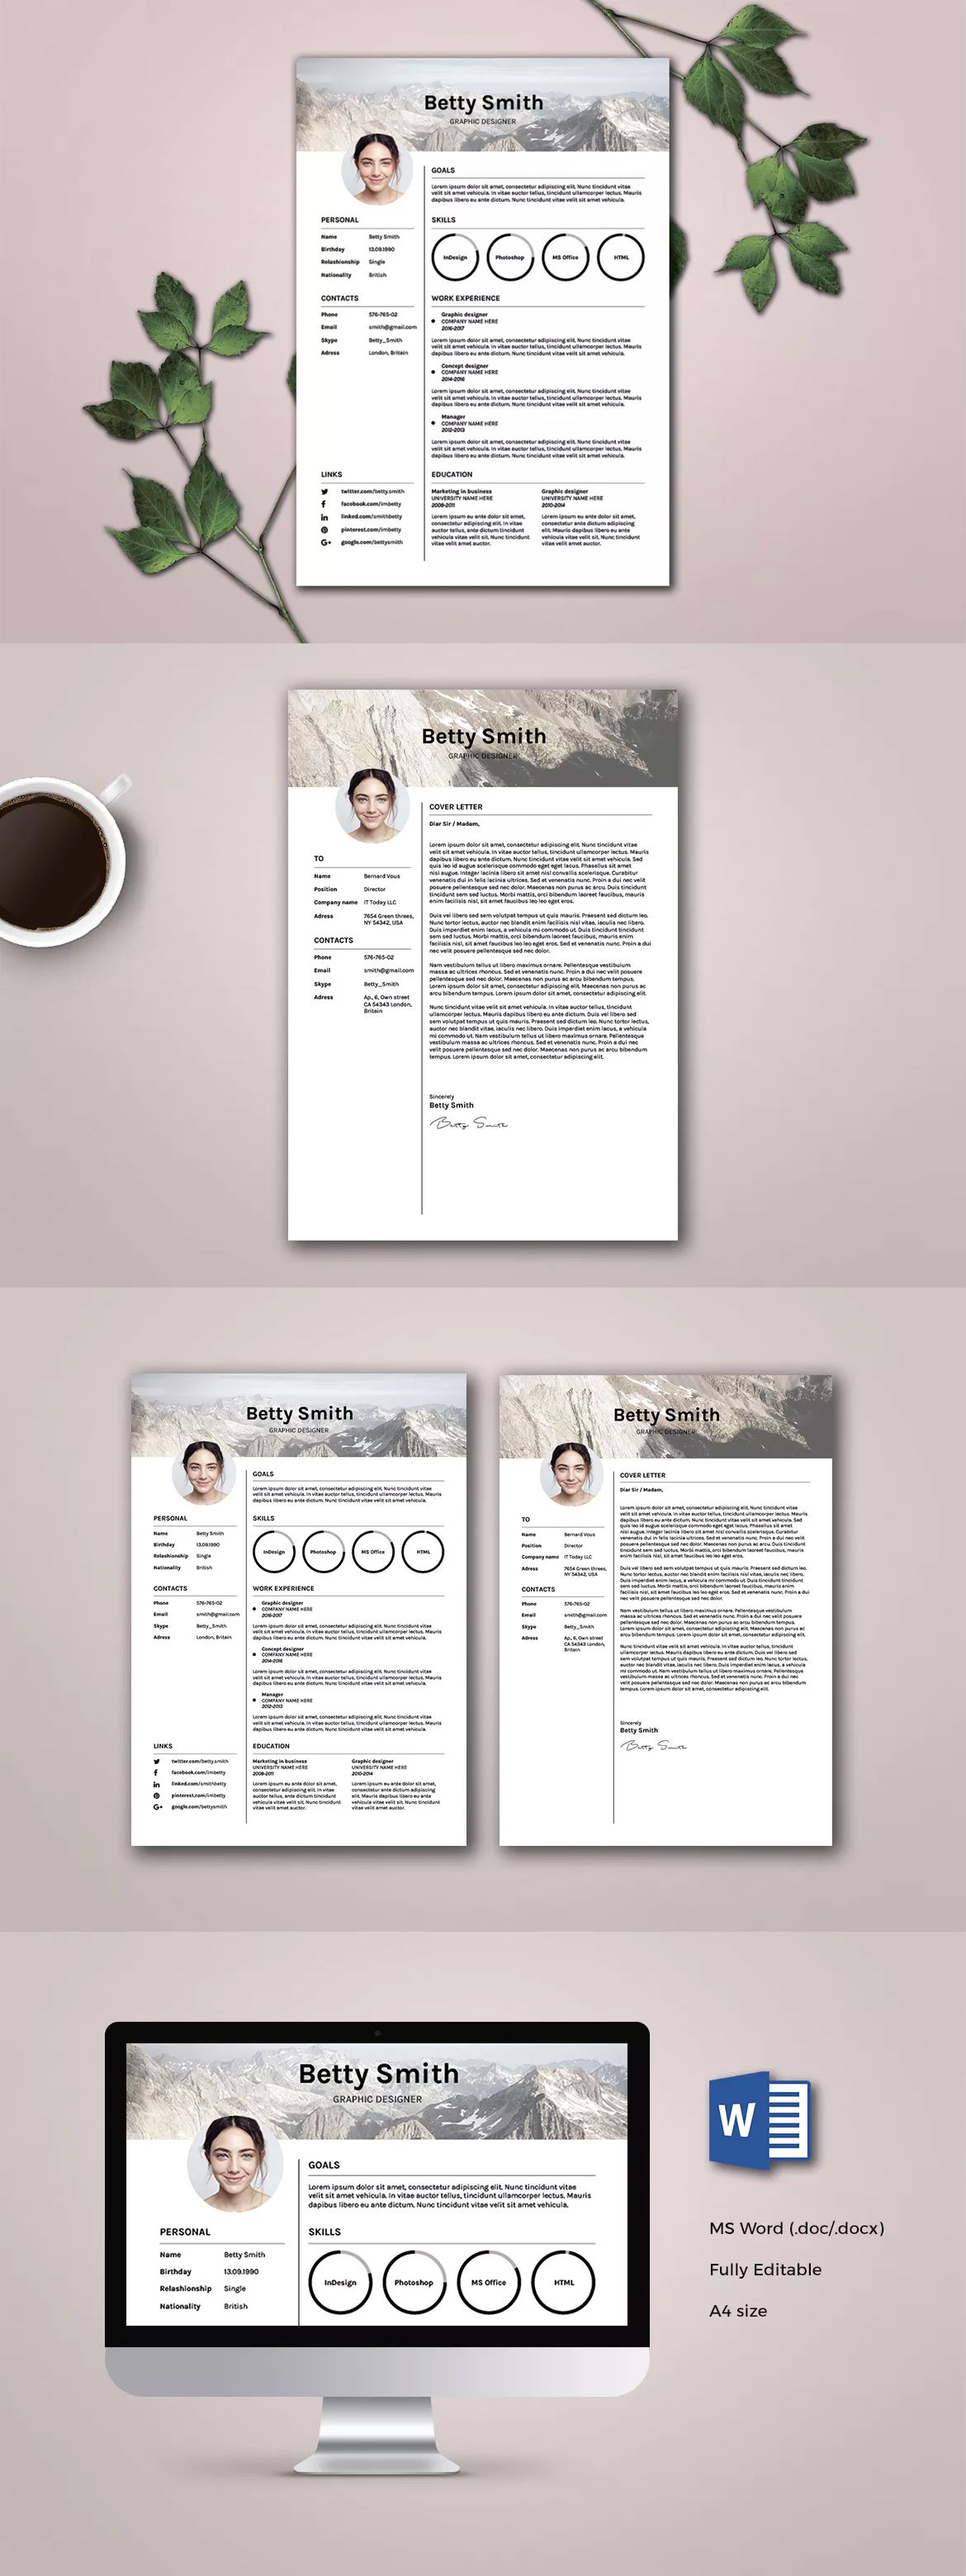 Clean Resume / CV Template InDesign INDD, MS Word A4 | Resume / CV ...